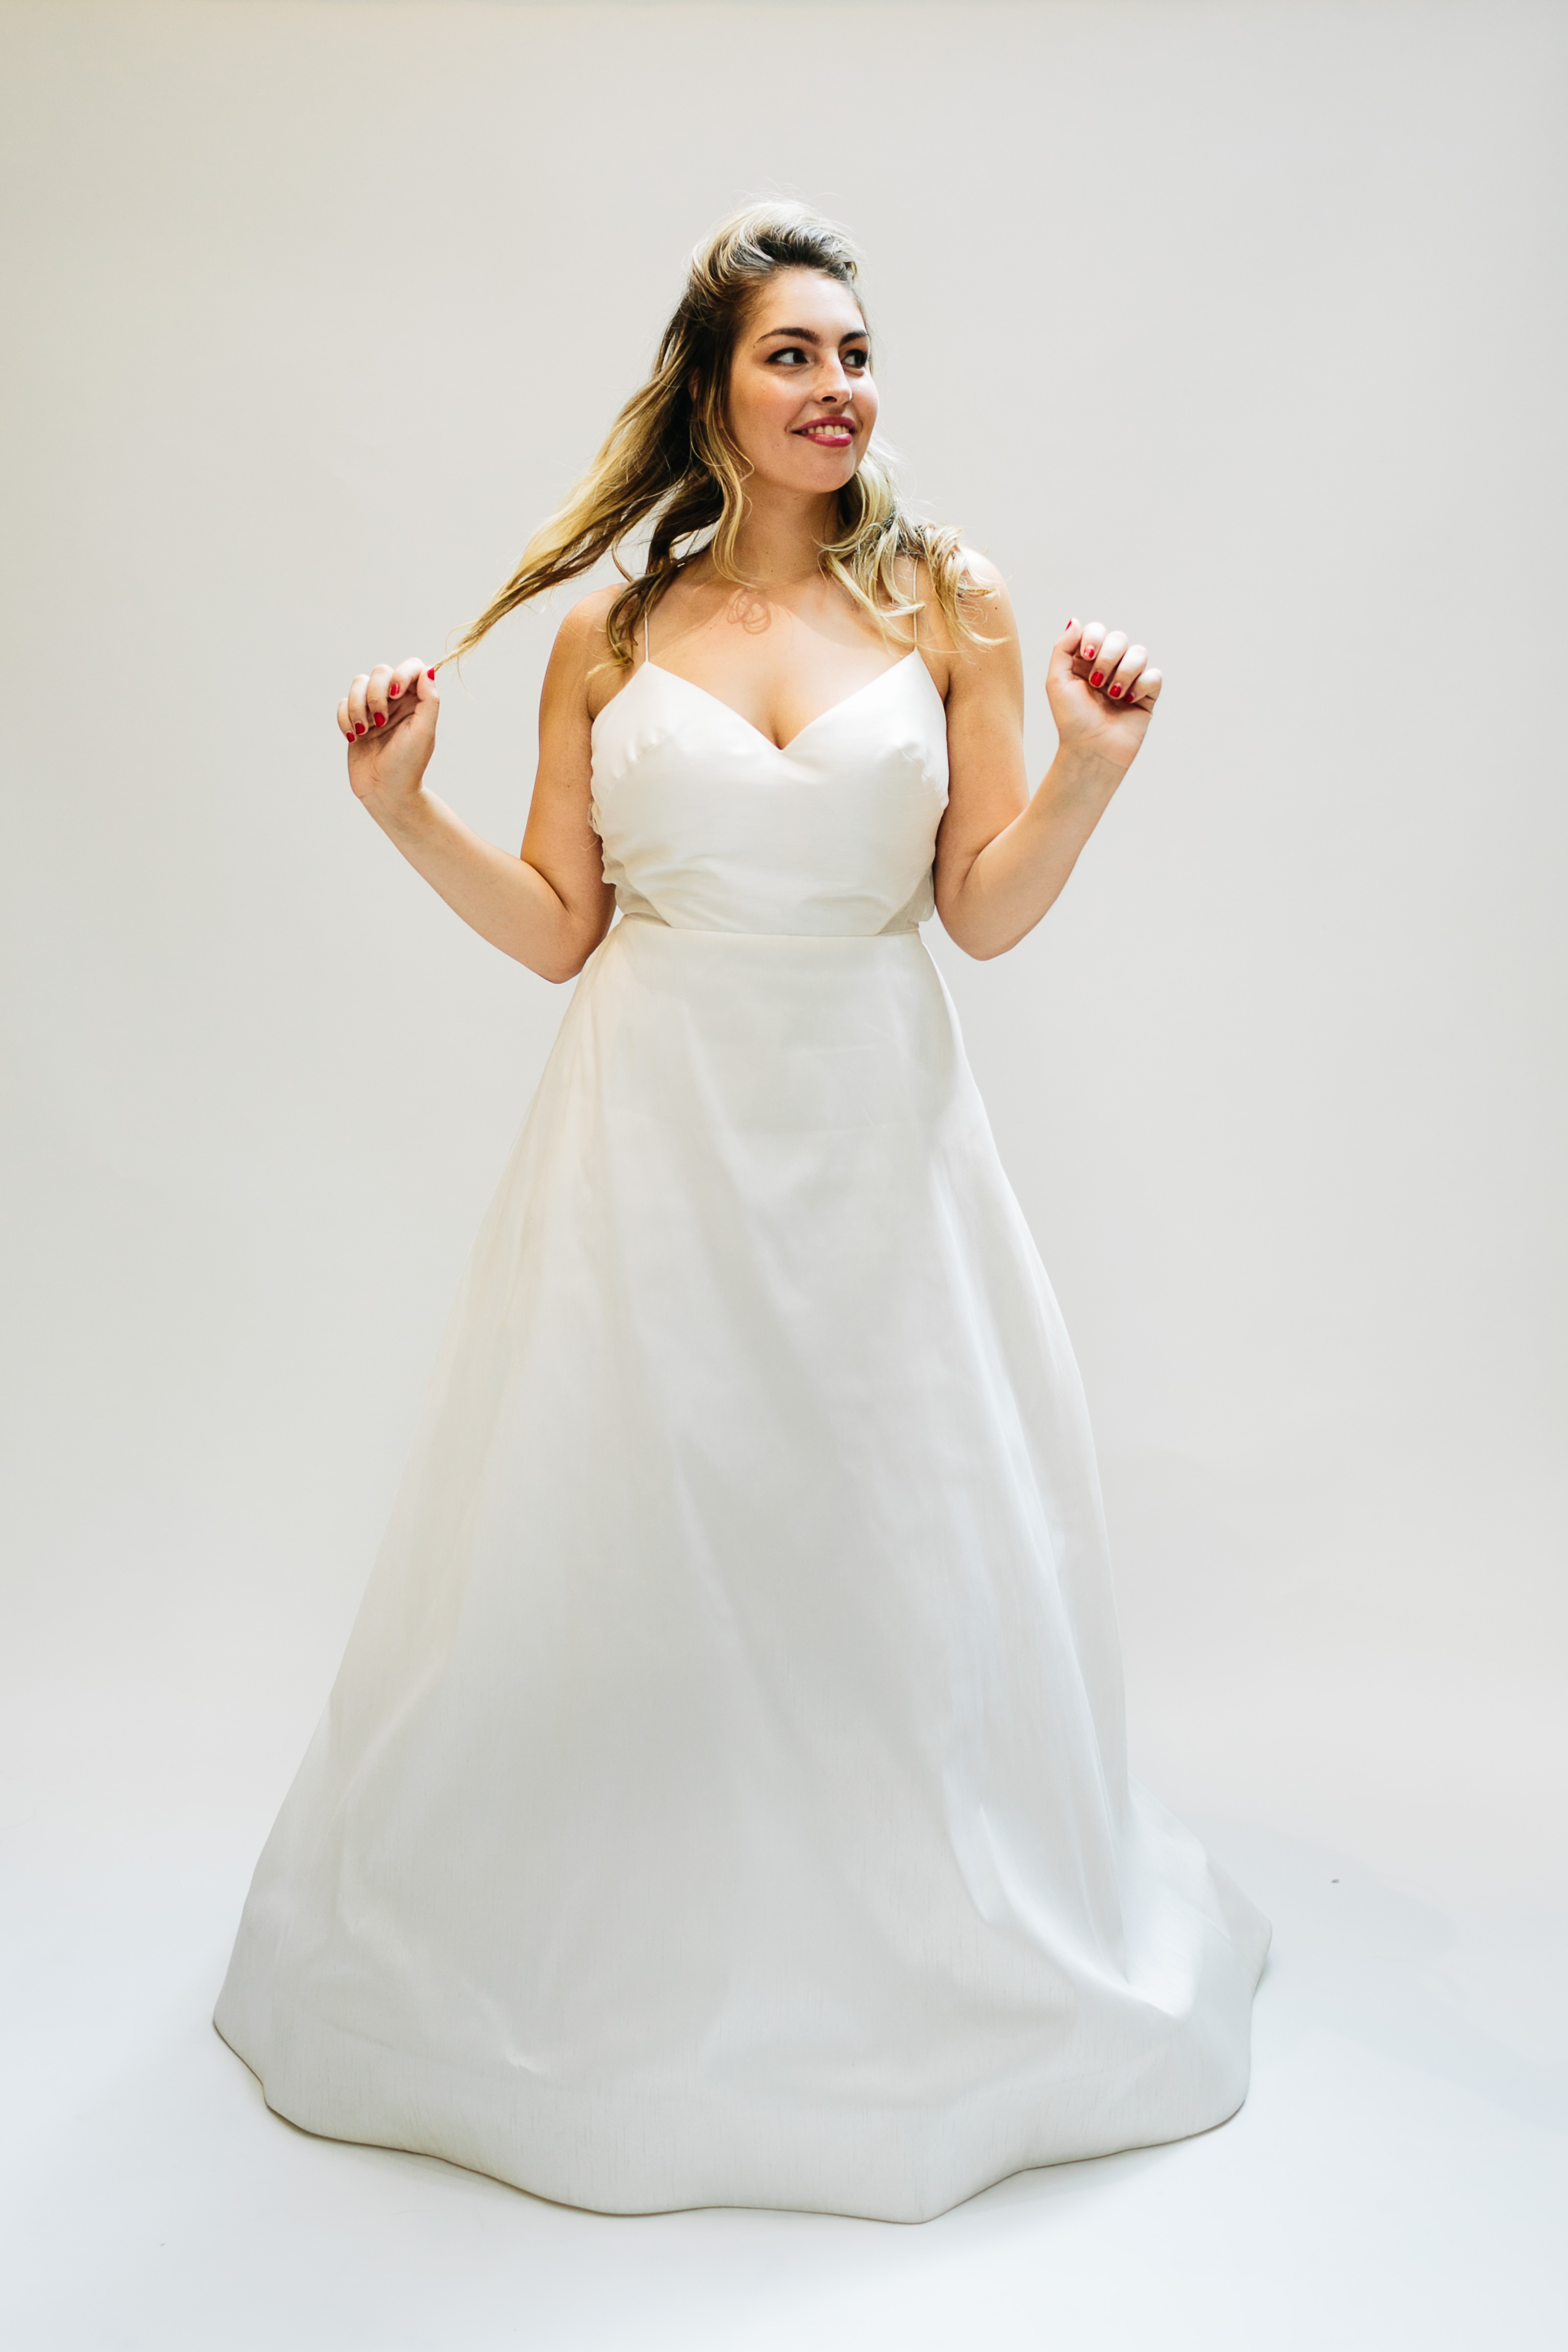 Lovely Bride Launches Plus-Size Collection: Exclusive Details